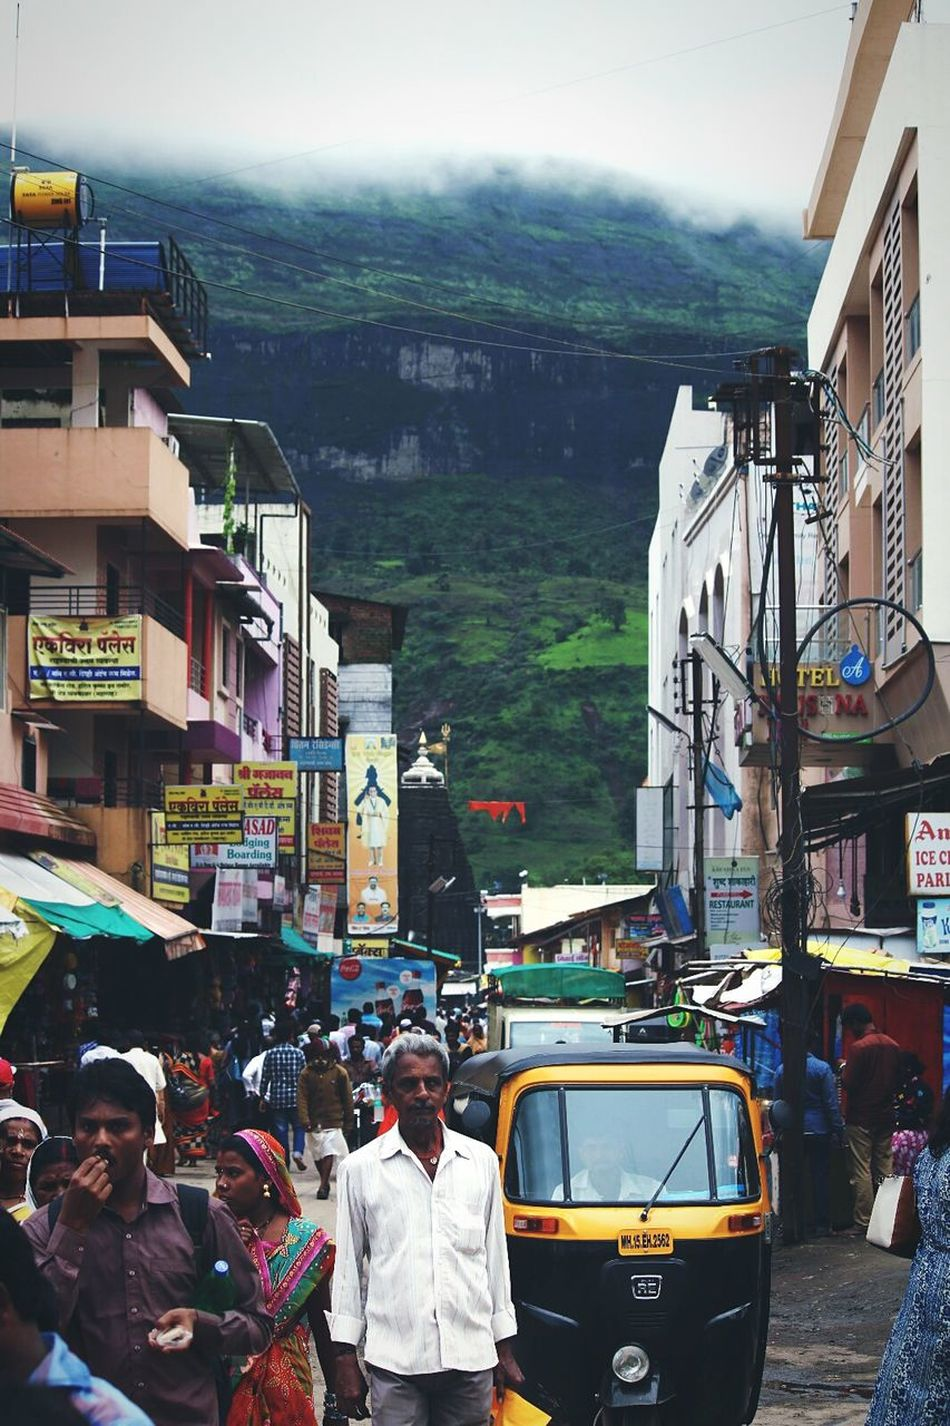 Trimbakeshwar Temple People Buildings Clouds Mountains Green Cool Climate